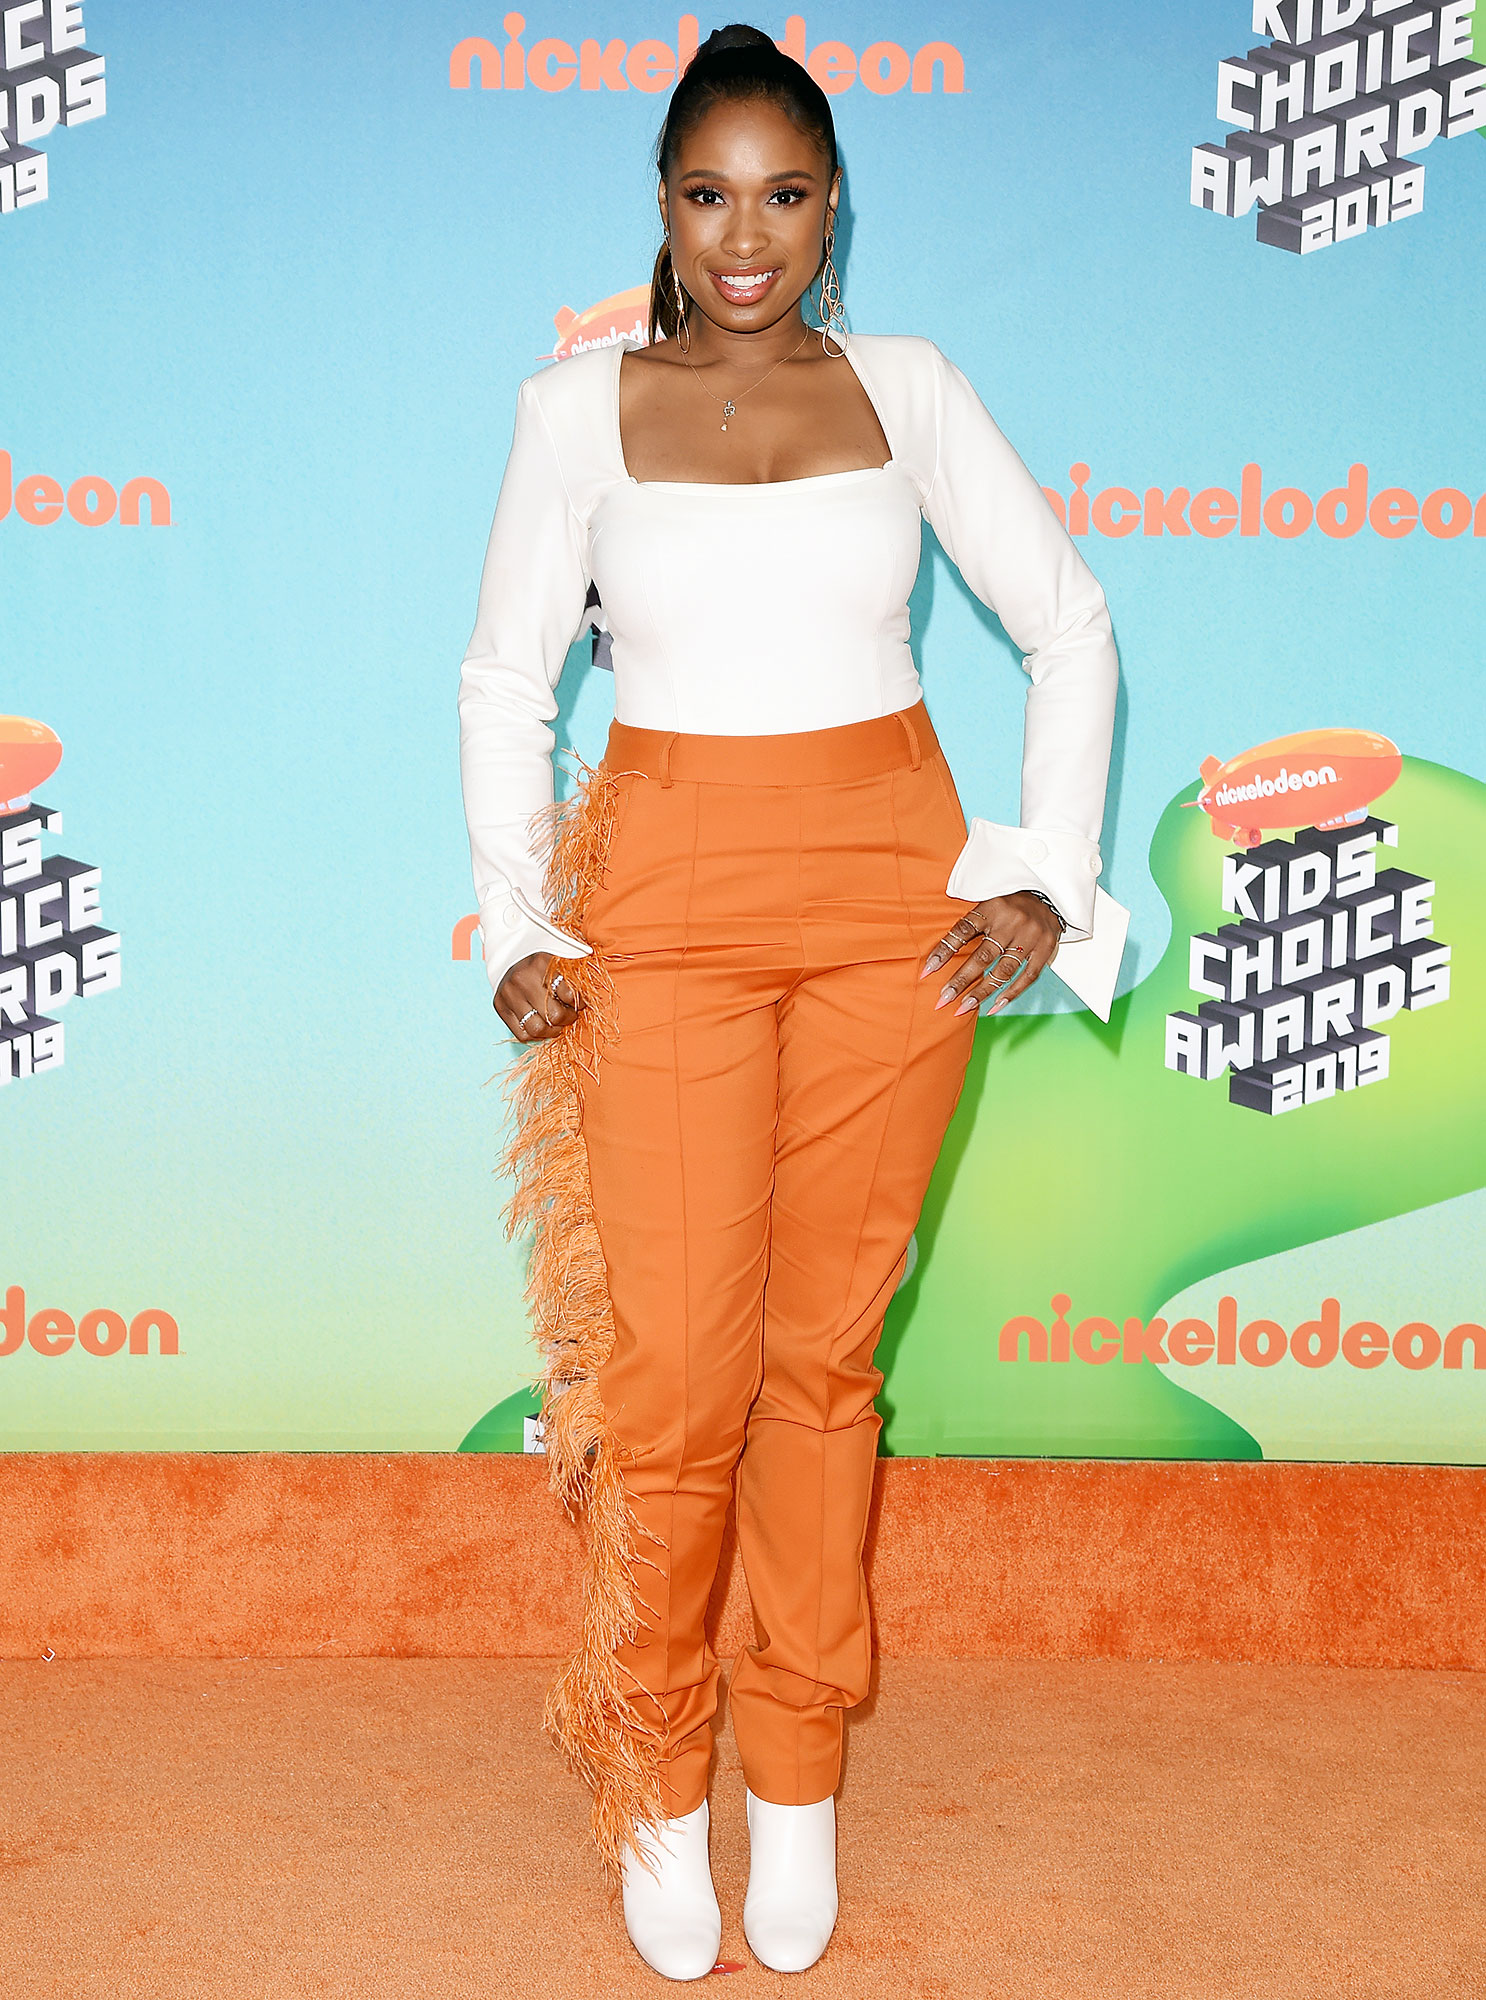 Nickelodeon Kids Choice Awards 2019 Jennifer Hudson - The 37-year-old singer wore an outfit from Hanifa that included festive orange pants with a bit of fringe along one side and a white long-sleeve top.